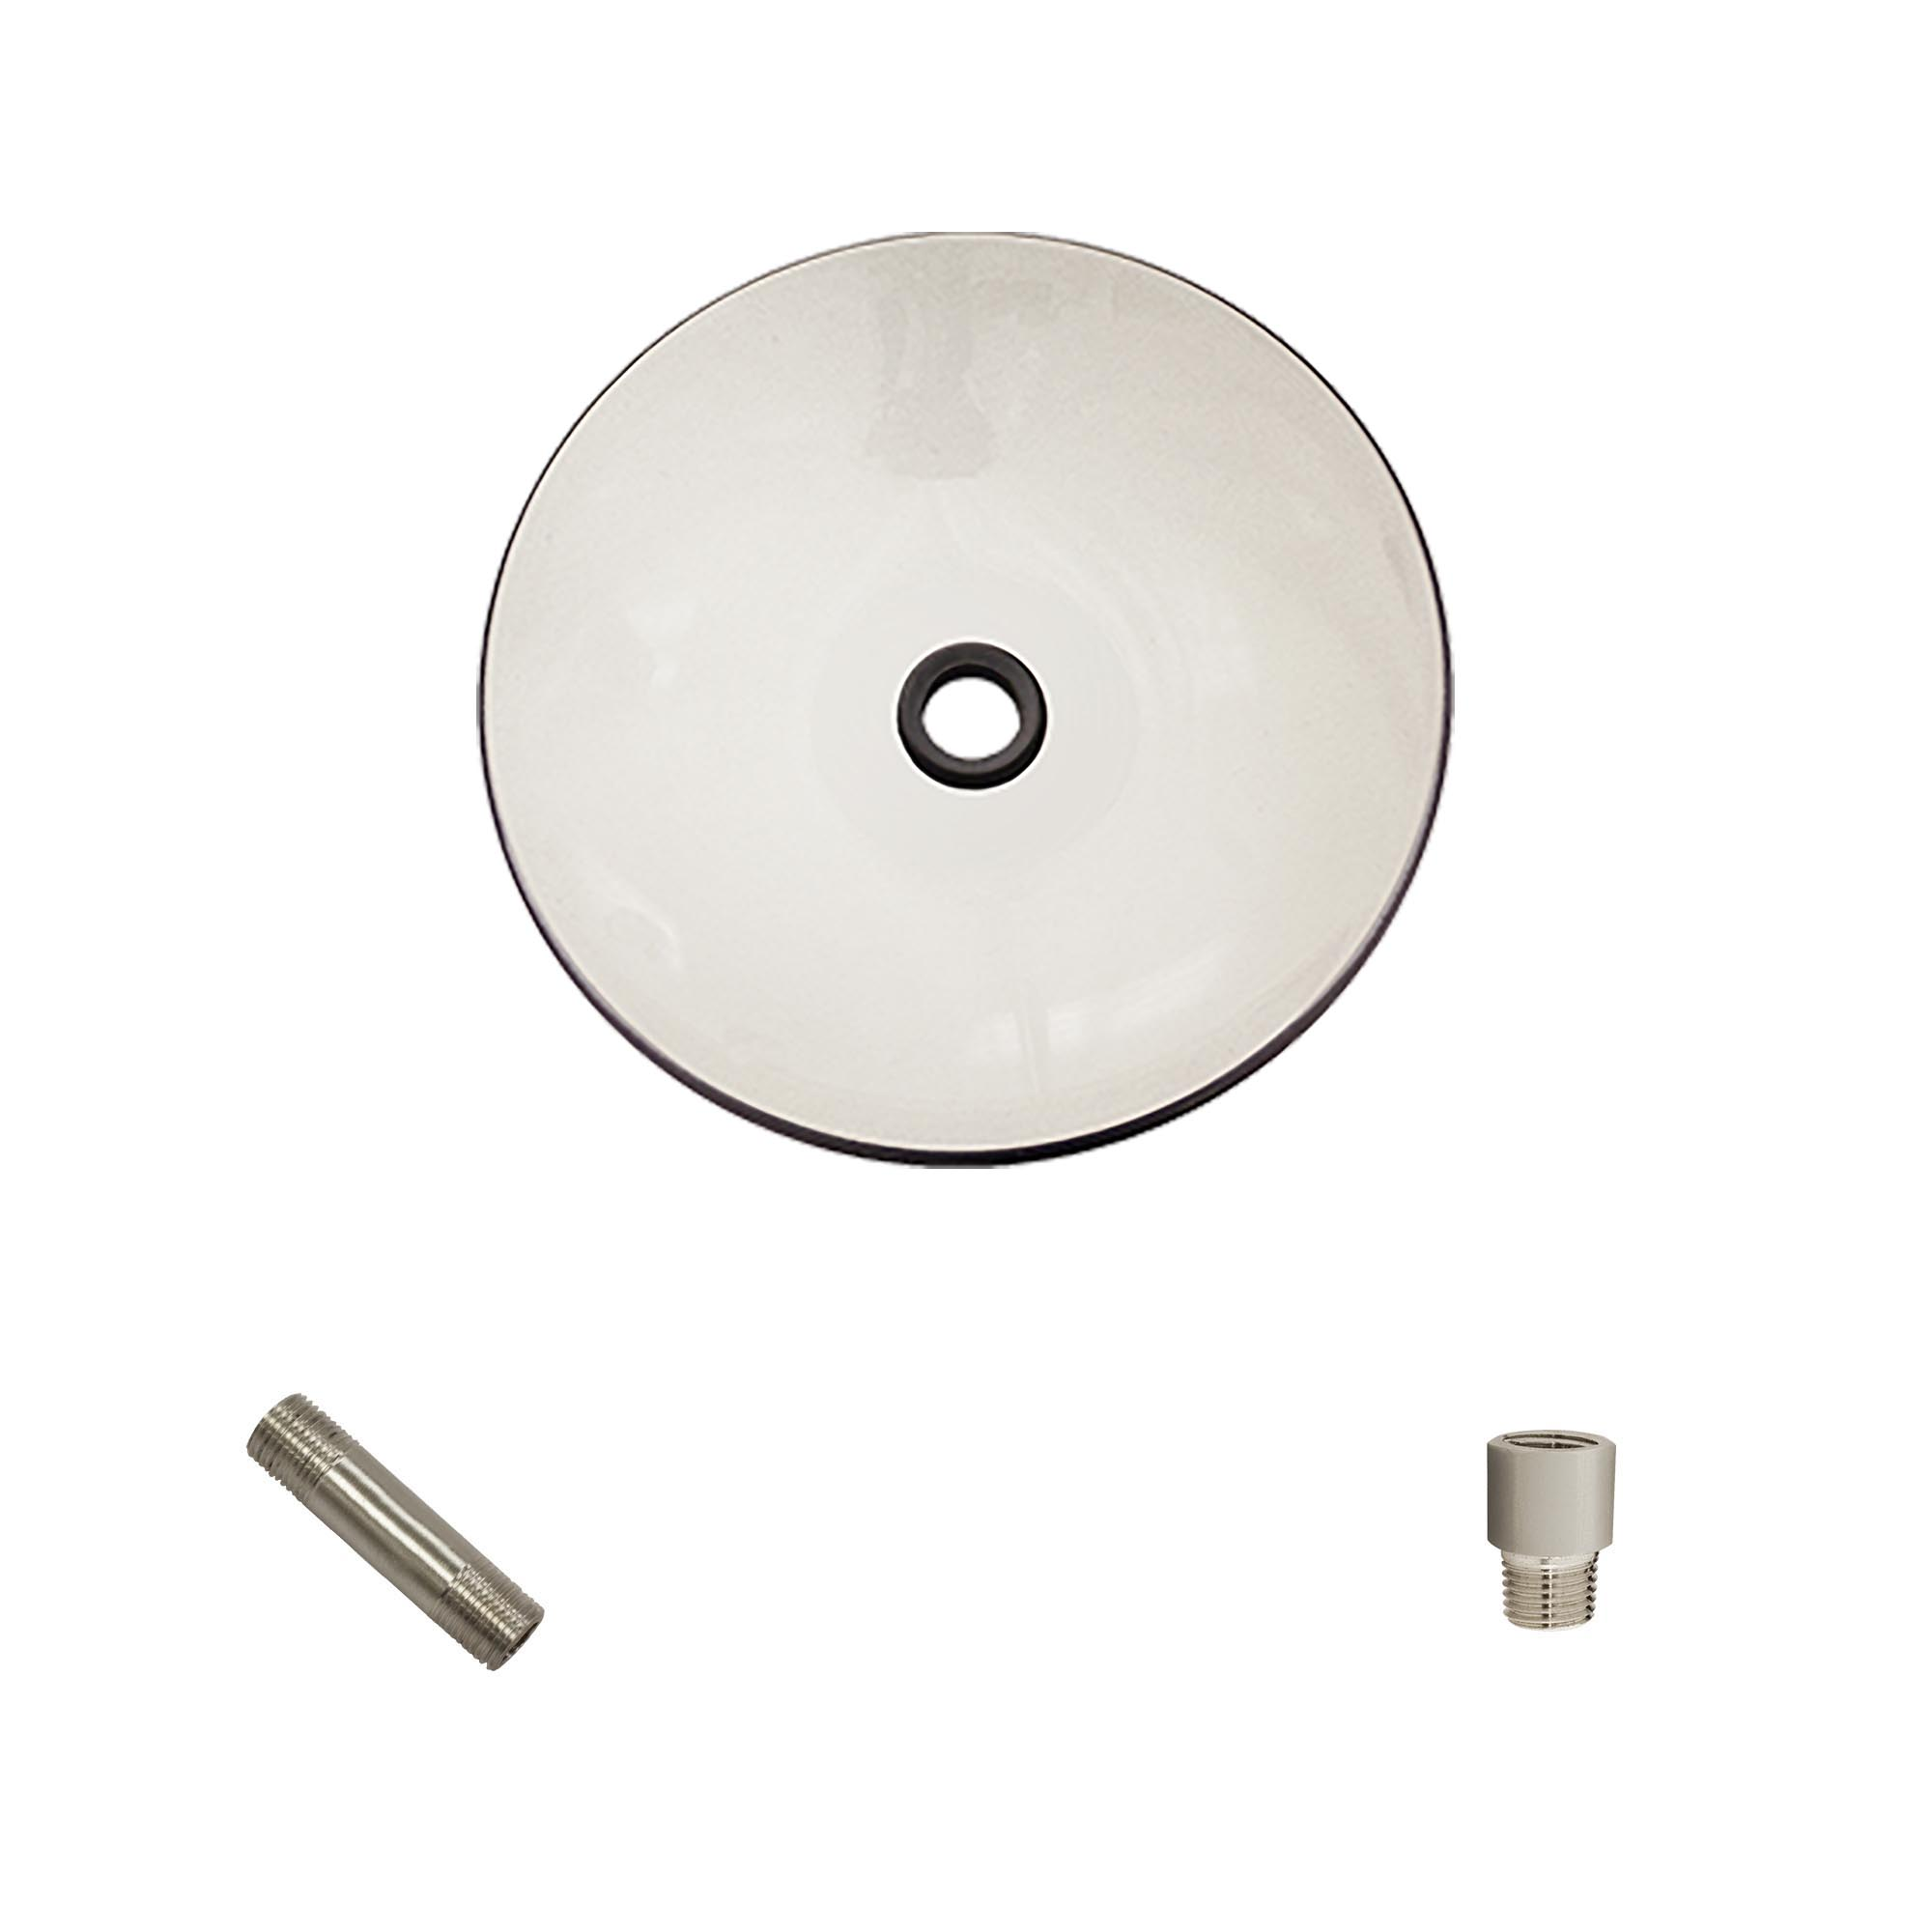 Model 901233 Retrofit Kit for Chip Shield for Safety Air Guns with 3/4 NPT ext